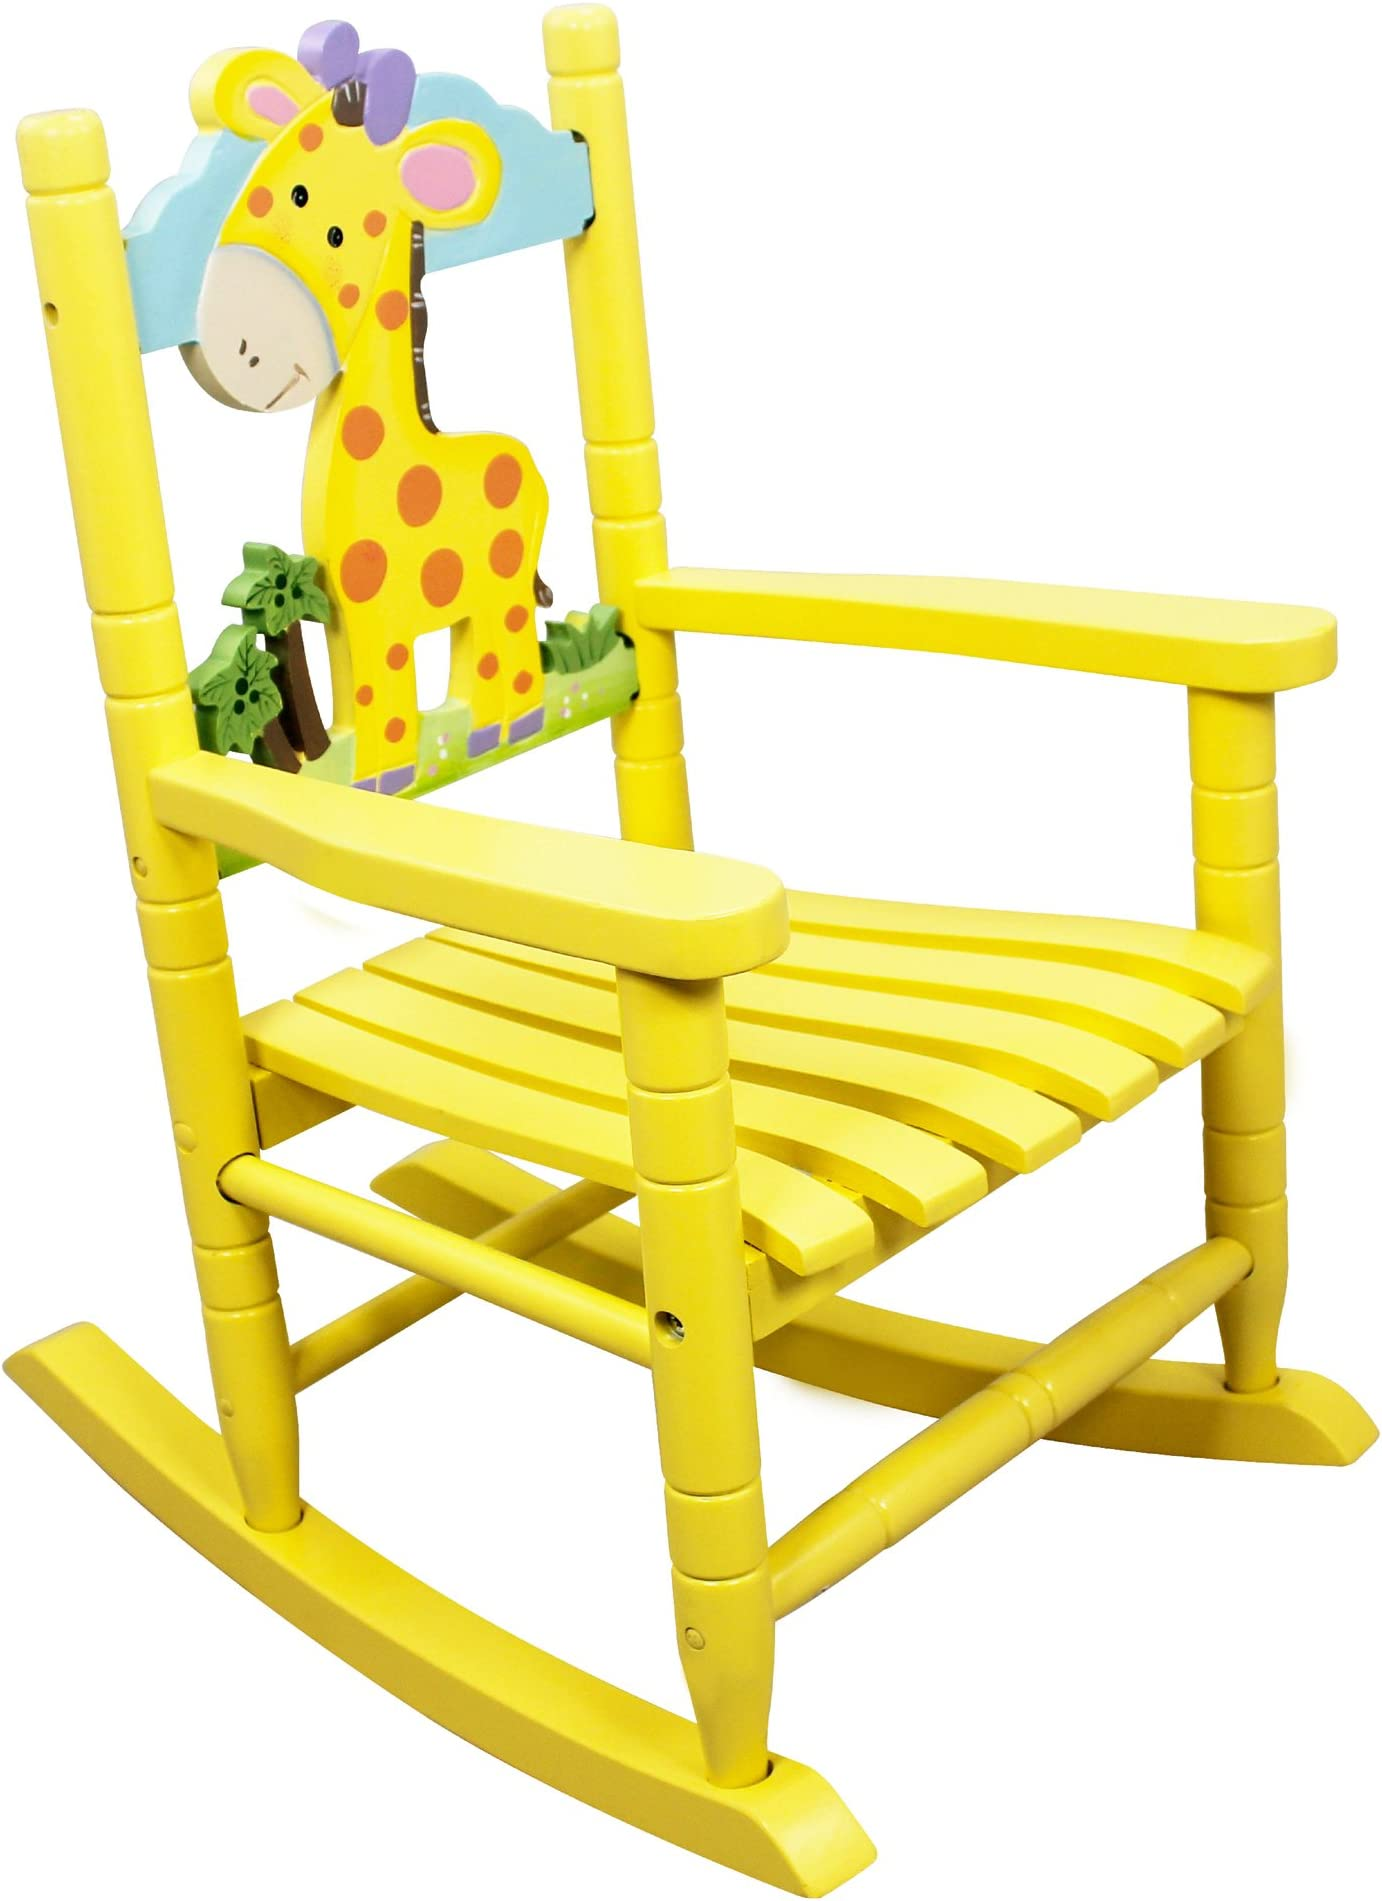 Teamson Kids - Safari Wooden Rocking Chair for Children - Giraffe  sc 1 st  Amazon.com & Kidsu0027 Rocking Chairs | Amazon.com